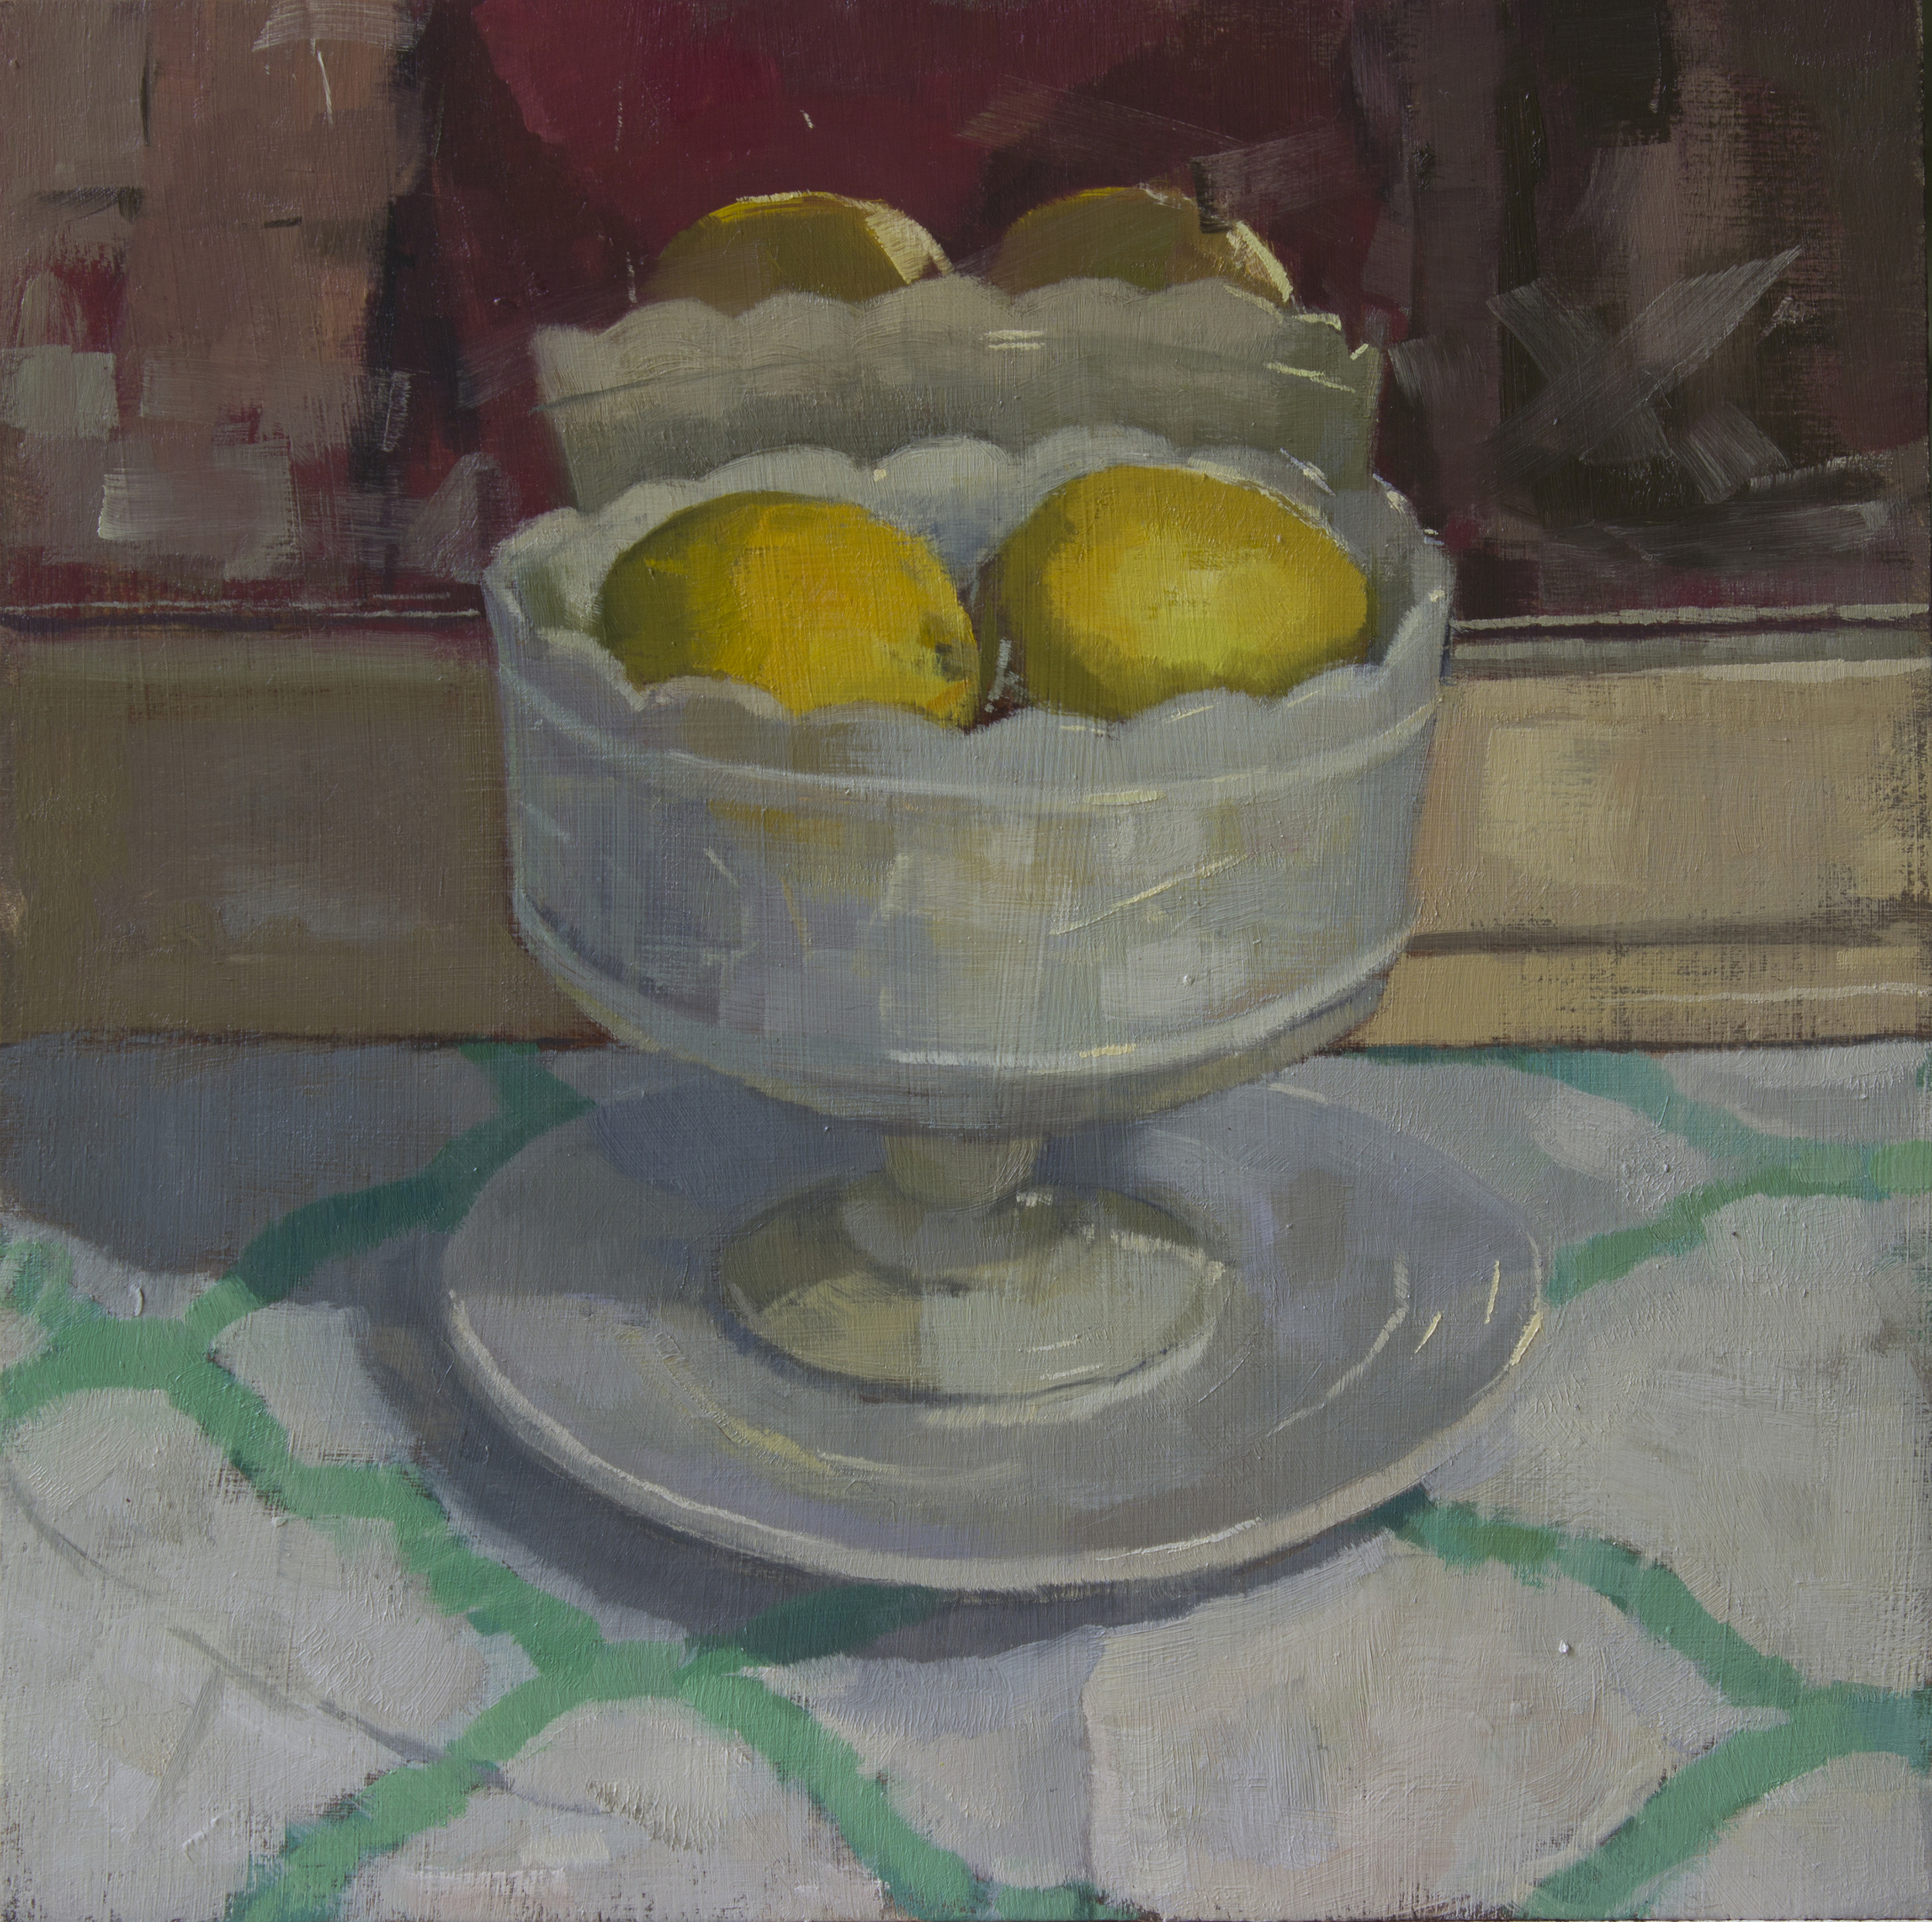 """On White Plates"", oil on panel, 10x10, $500"